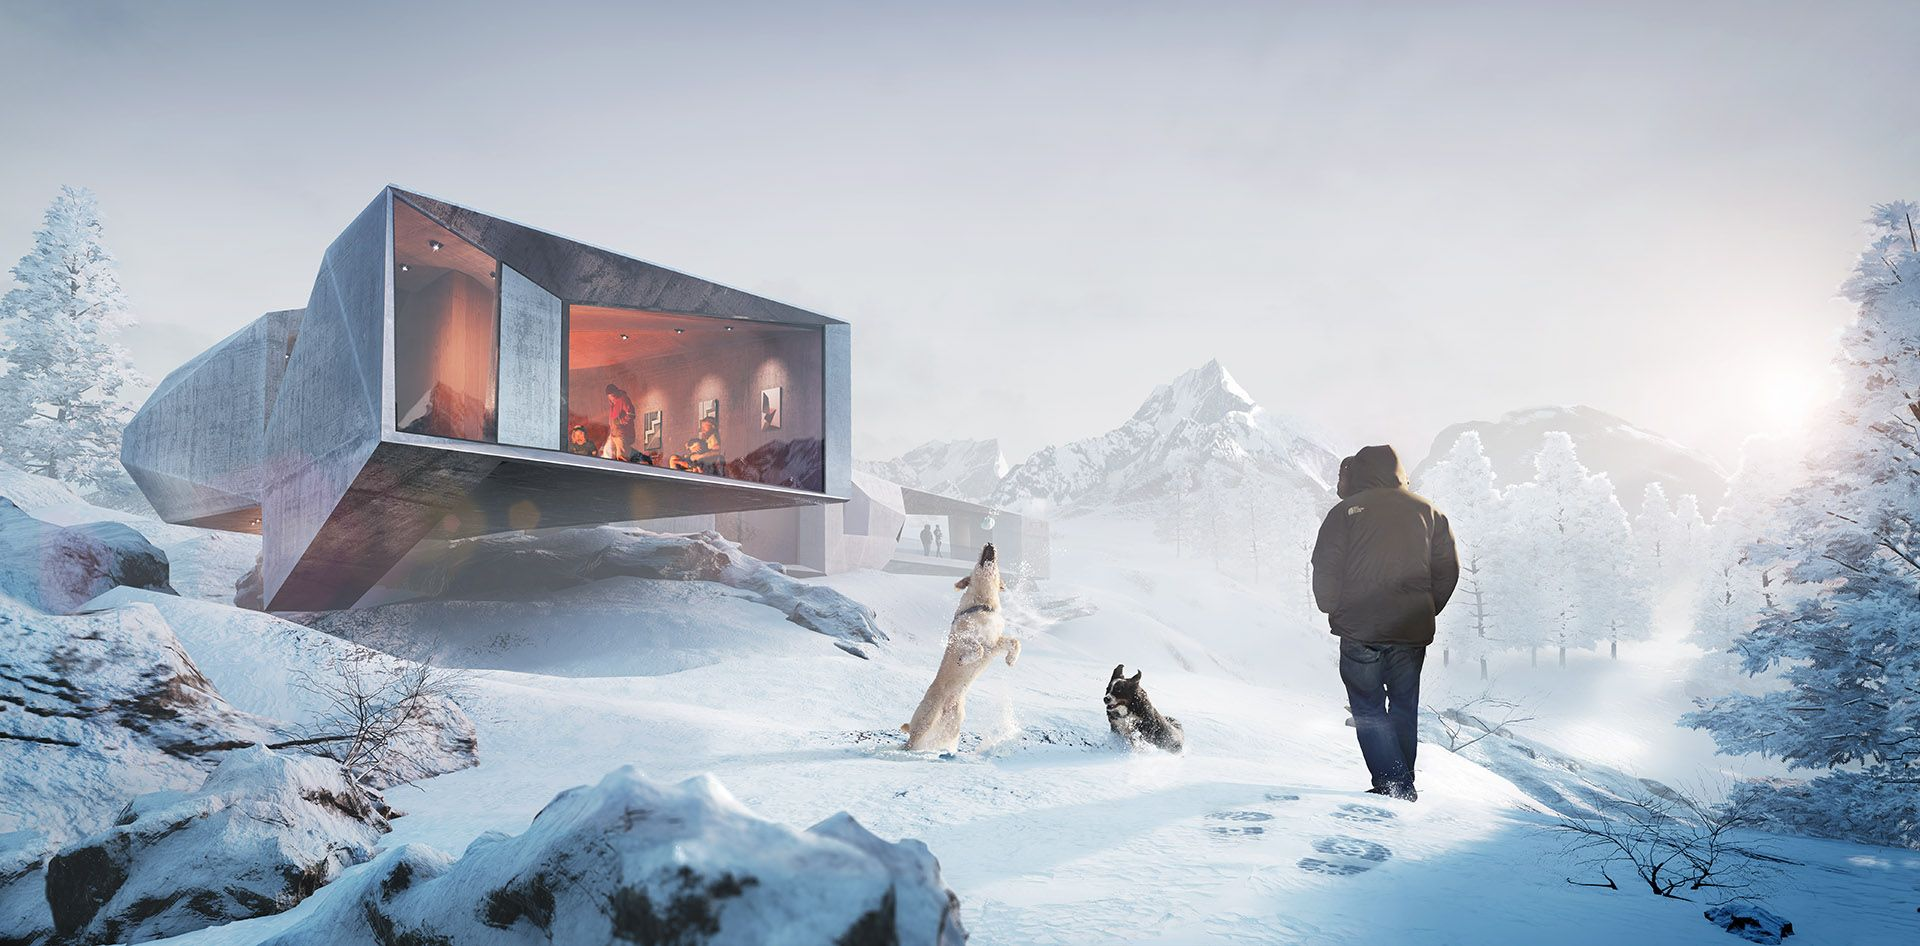 Unreal engine real time christmas illustration and for Unreal engine 4 architecture